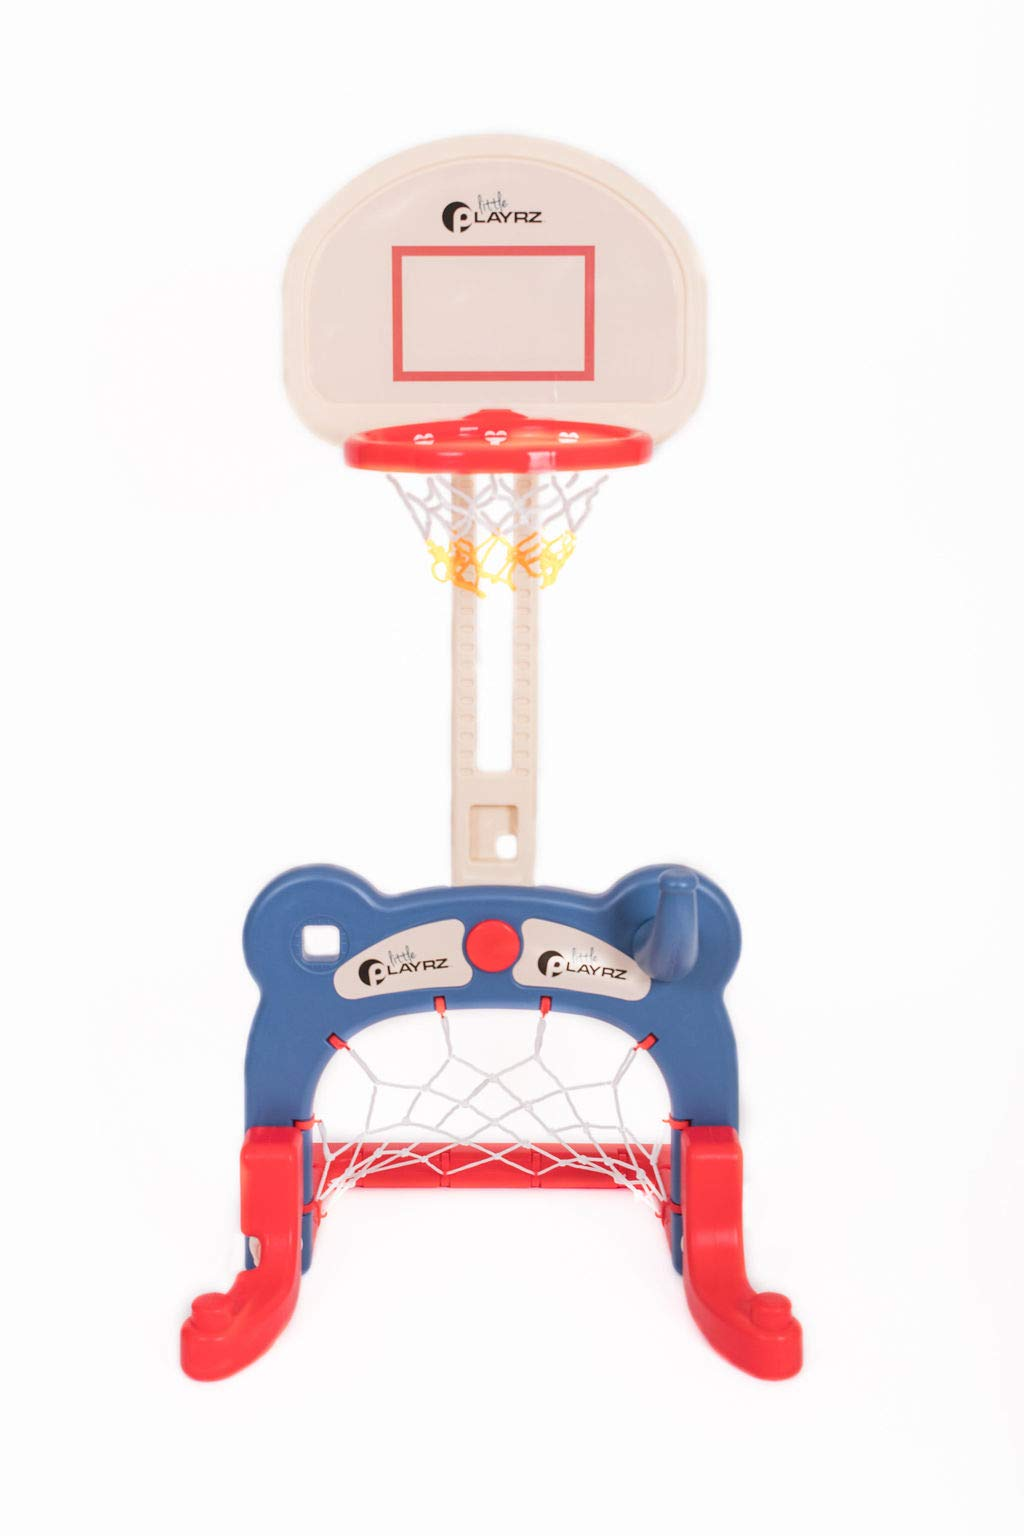 Kids 3-in-1 Sports Center: Basketball Hoop, Soccer Goal, Ring Toss Playset by Playrz